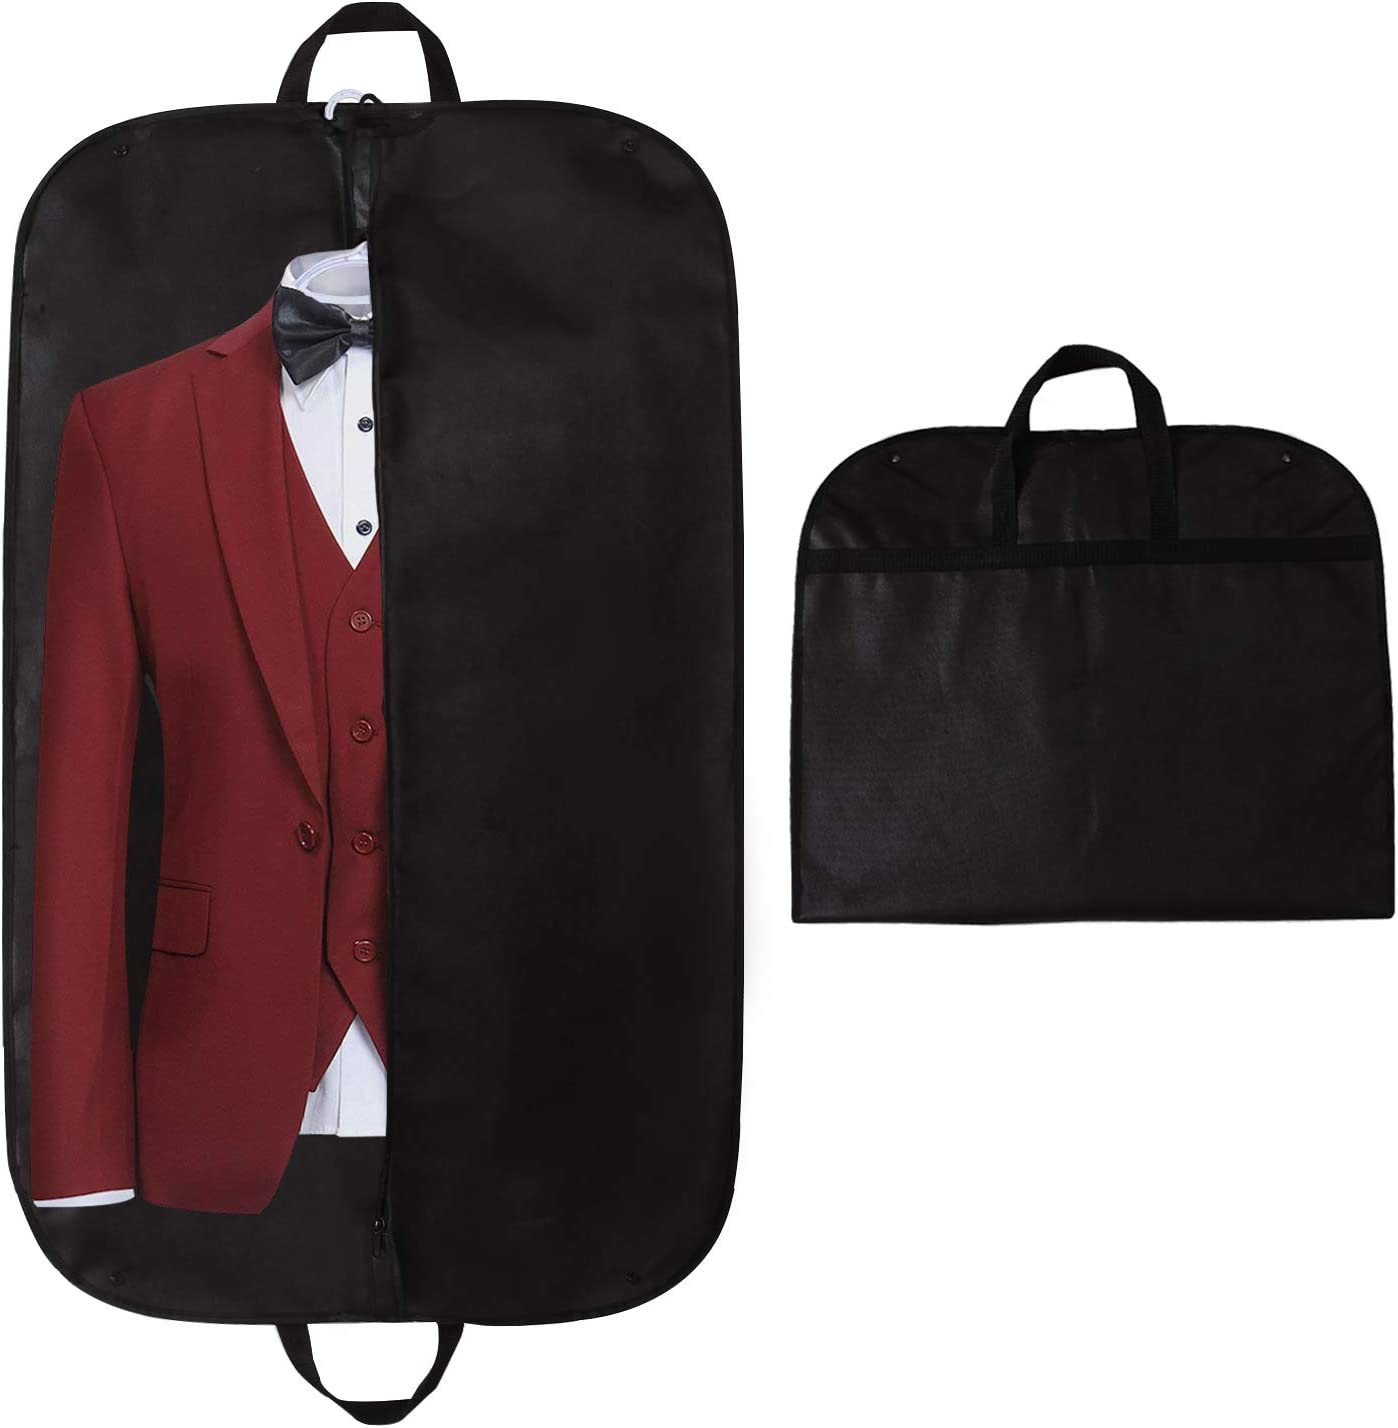 "STEVOY Garment Bag, 40"" Breathable Travel Suit Covers Carrier Bag with Handles, Foldover"